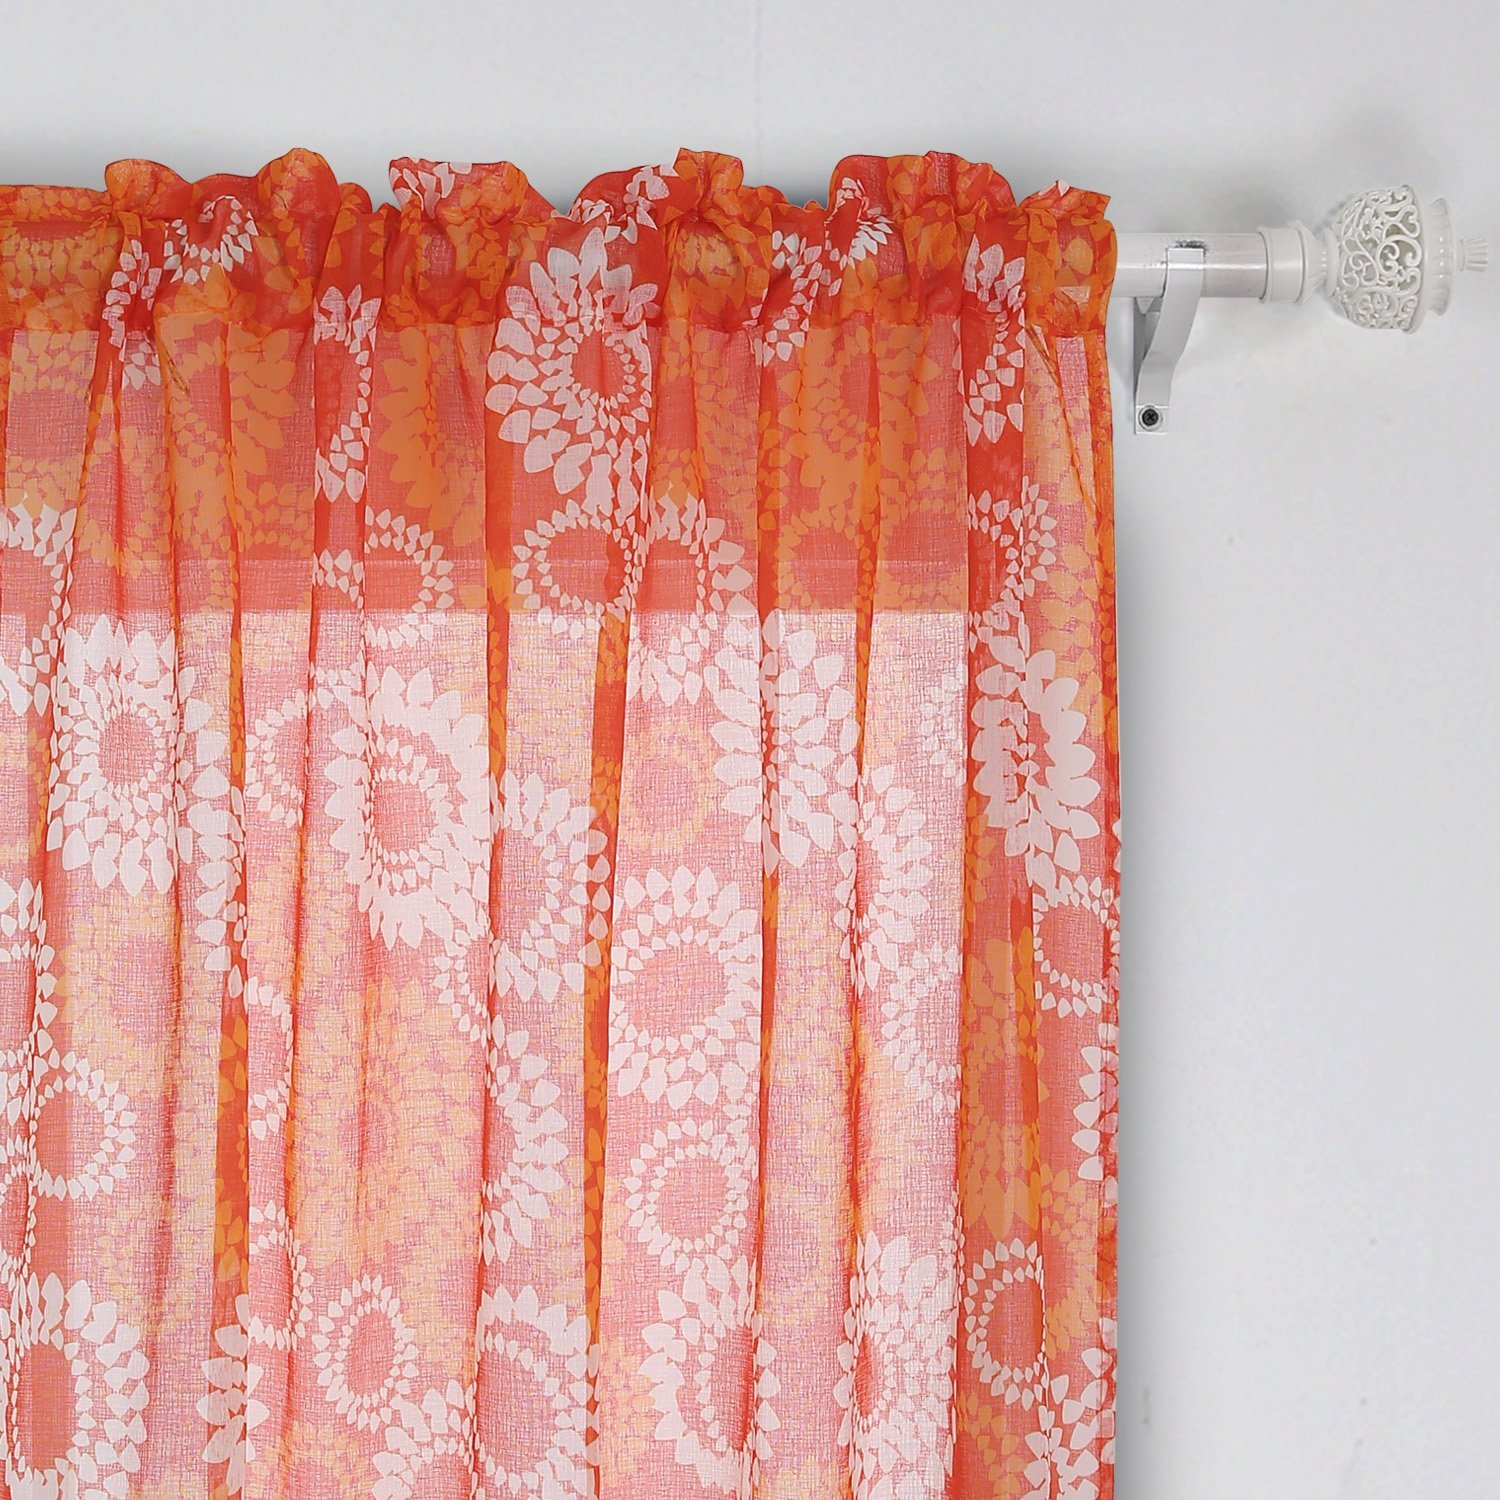 Cheap Sheer Orange Curtains Find Sheer Orange Curtains Deals On Line At Alibaba Com